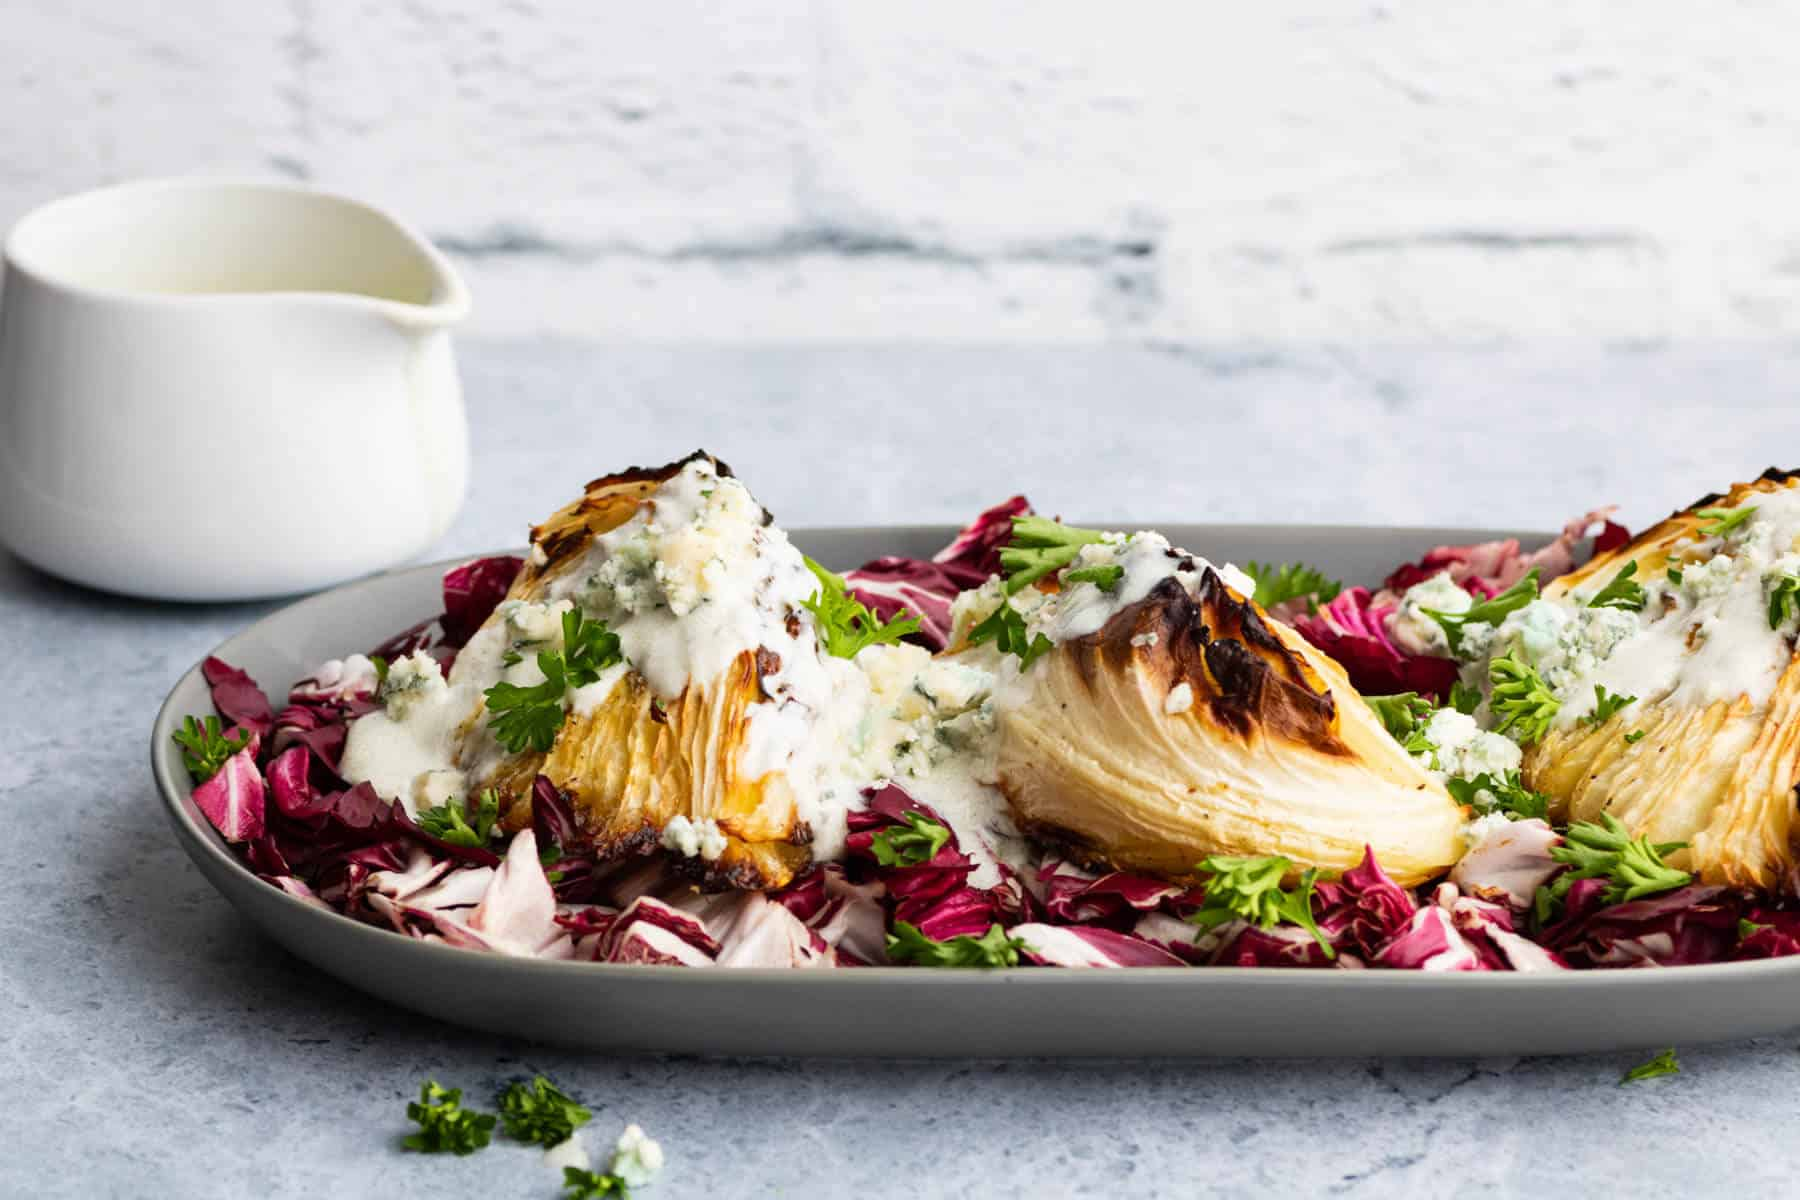 A platter holds roasted cabbage wedges topped with chunky blue cheese sauce all sitting on a bed of purple radicchio.